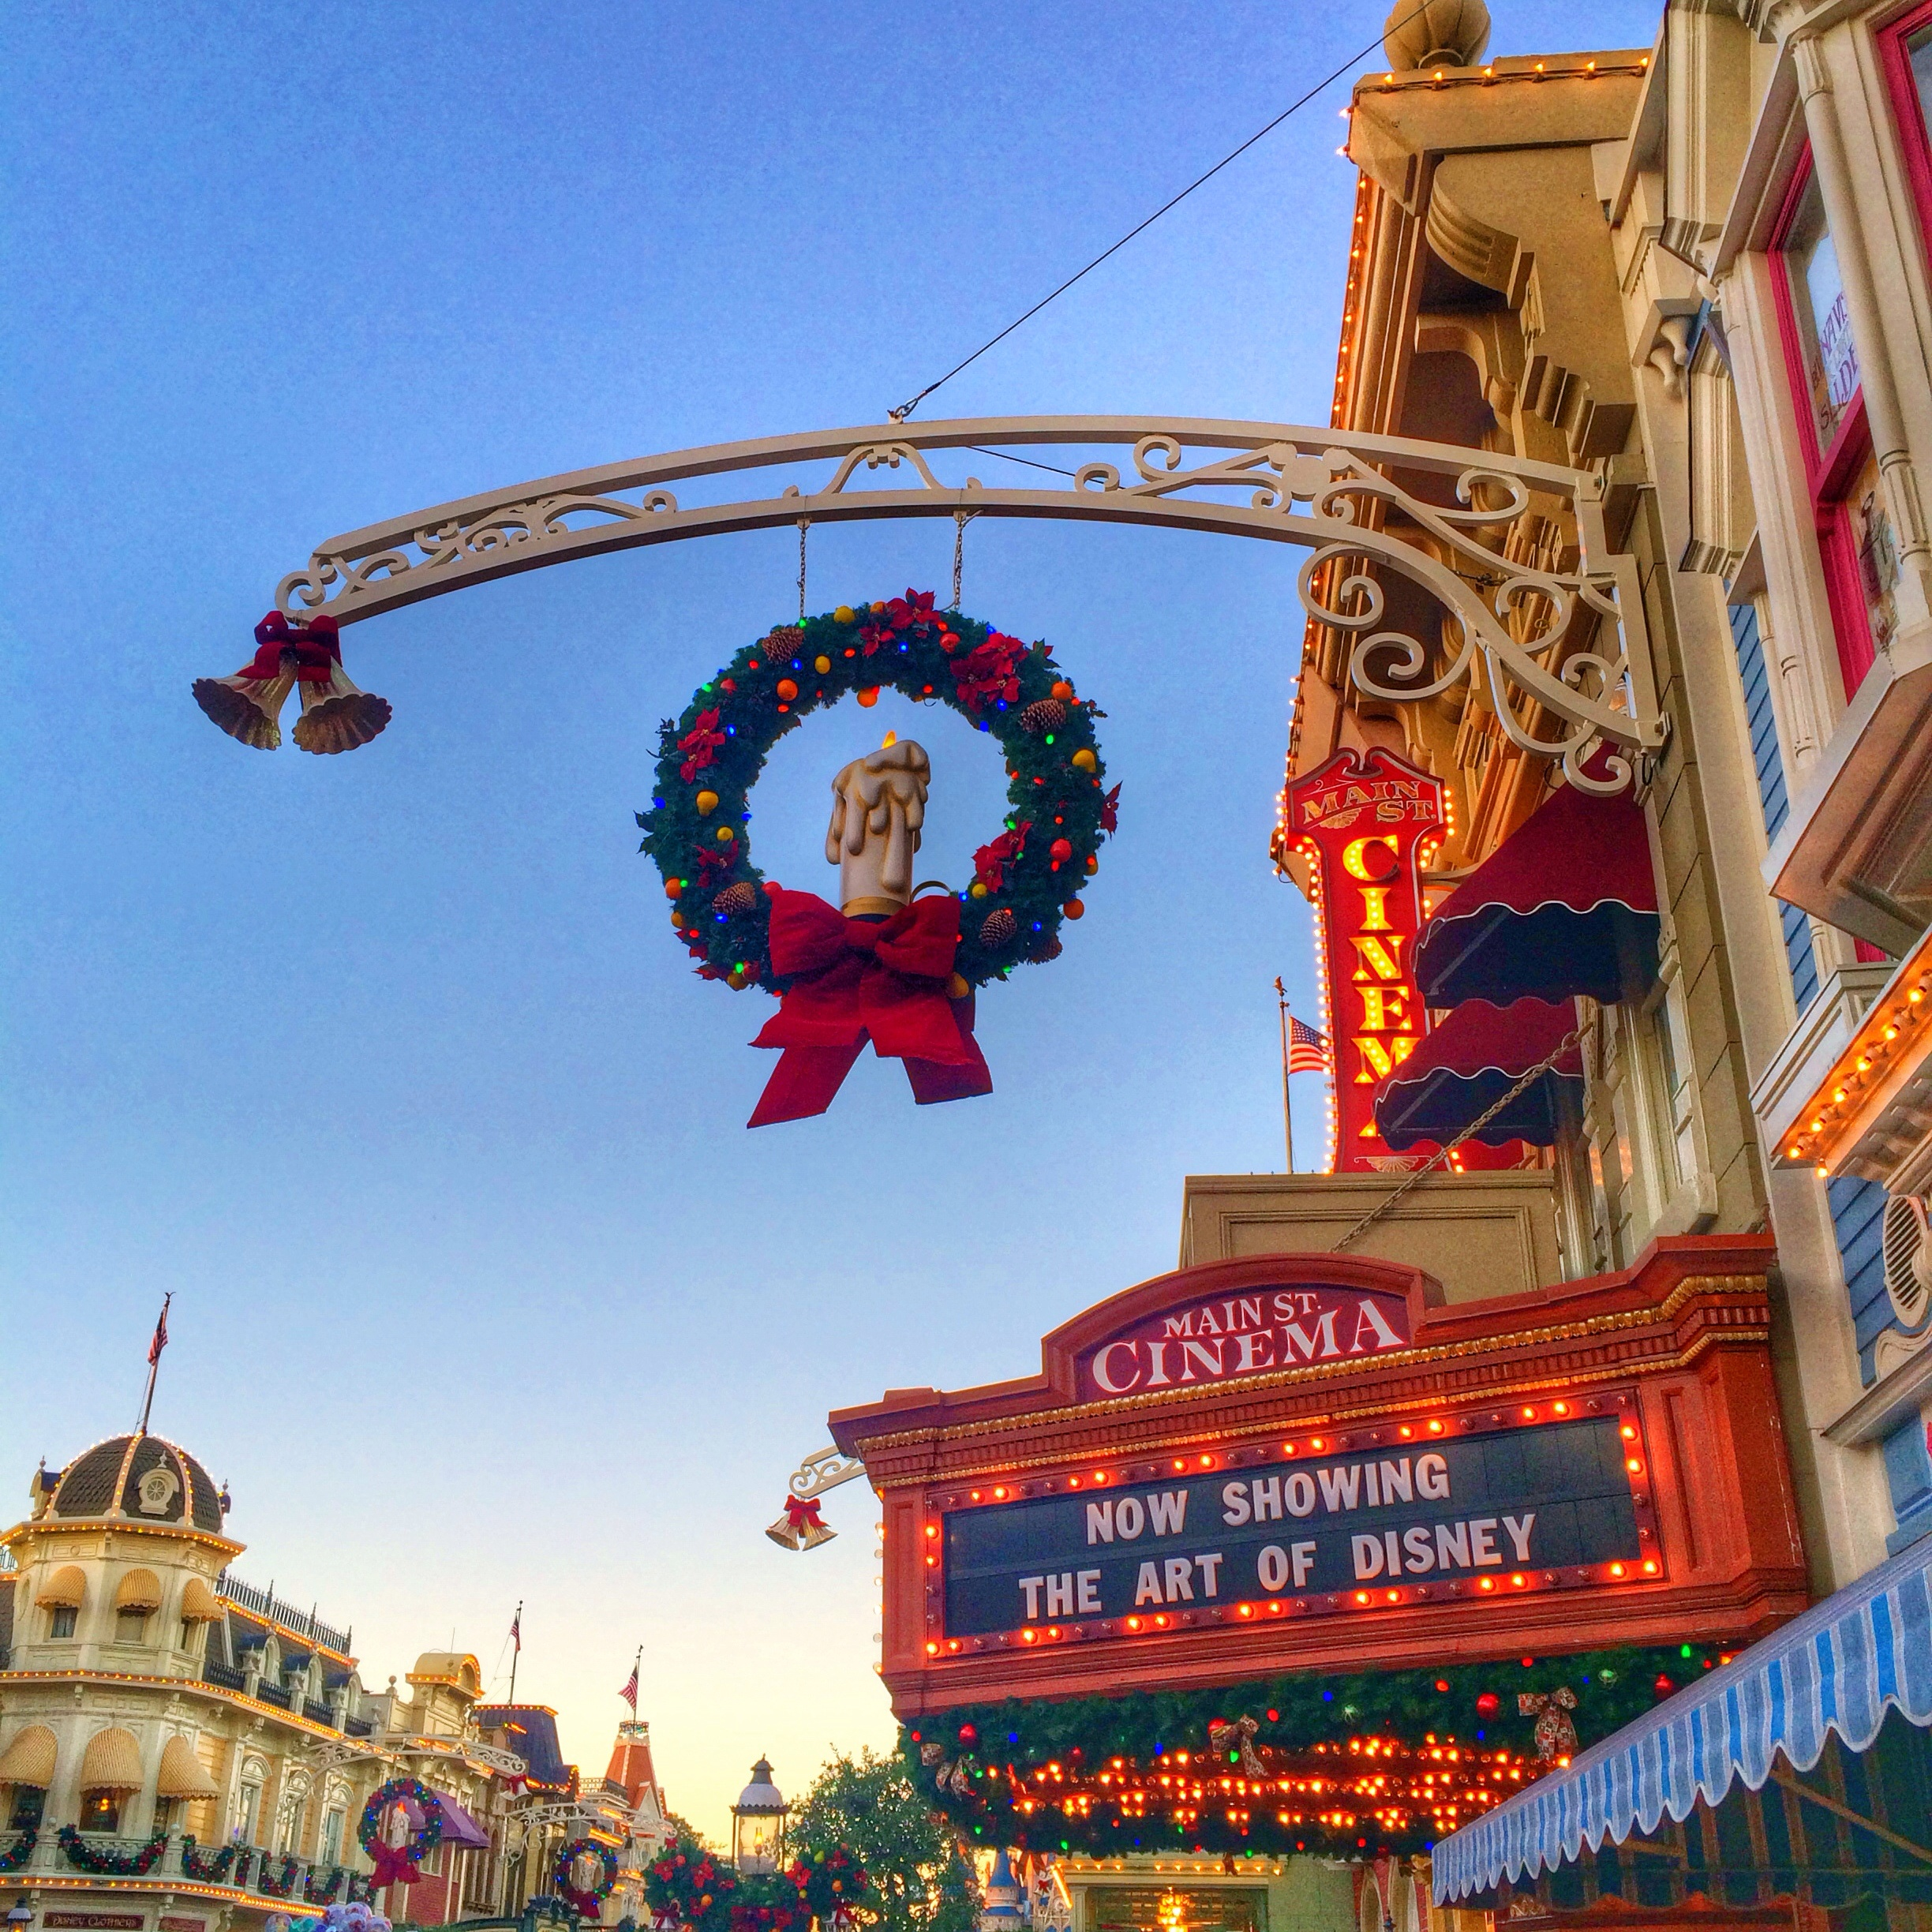 Disney S Very Merry Christmas Party Tickets: 8 Photos That Will Make You Want To Attend Mickey's Very